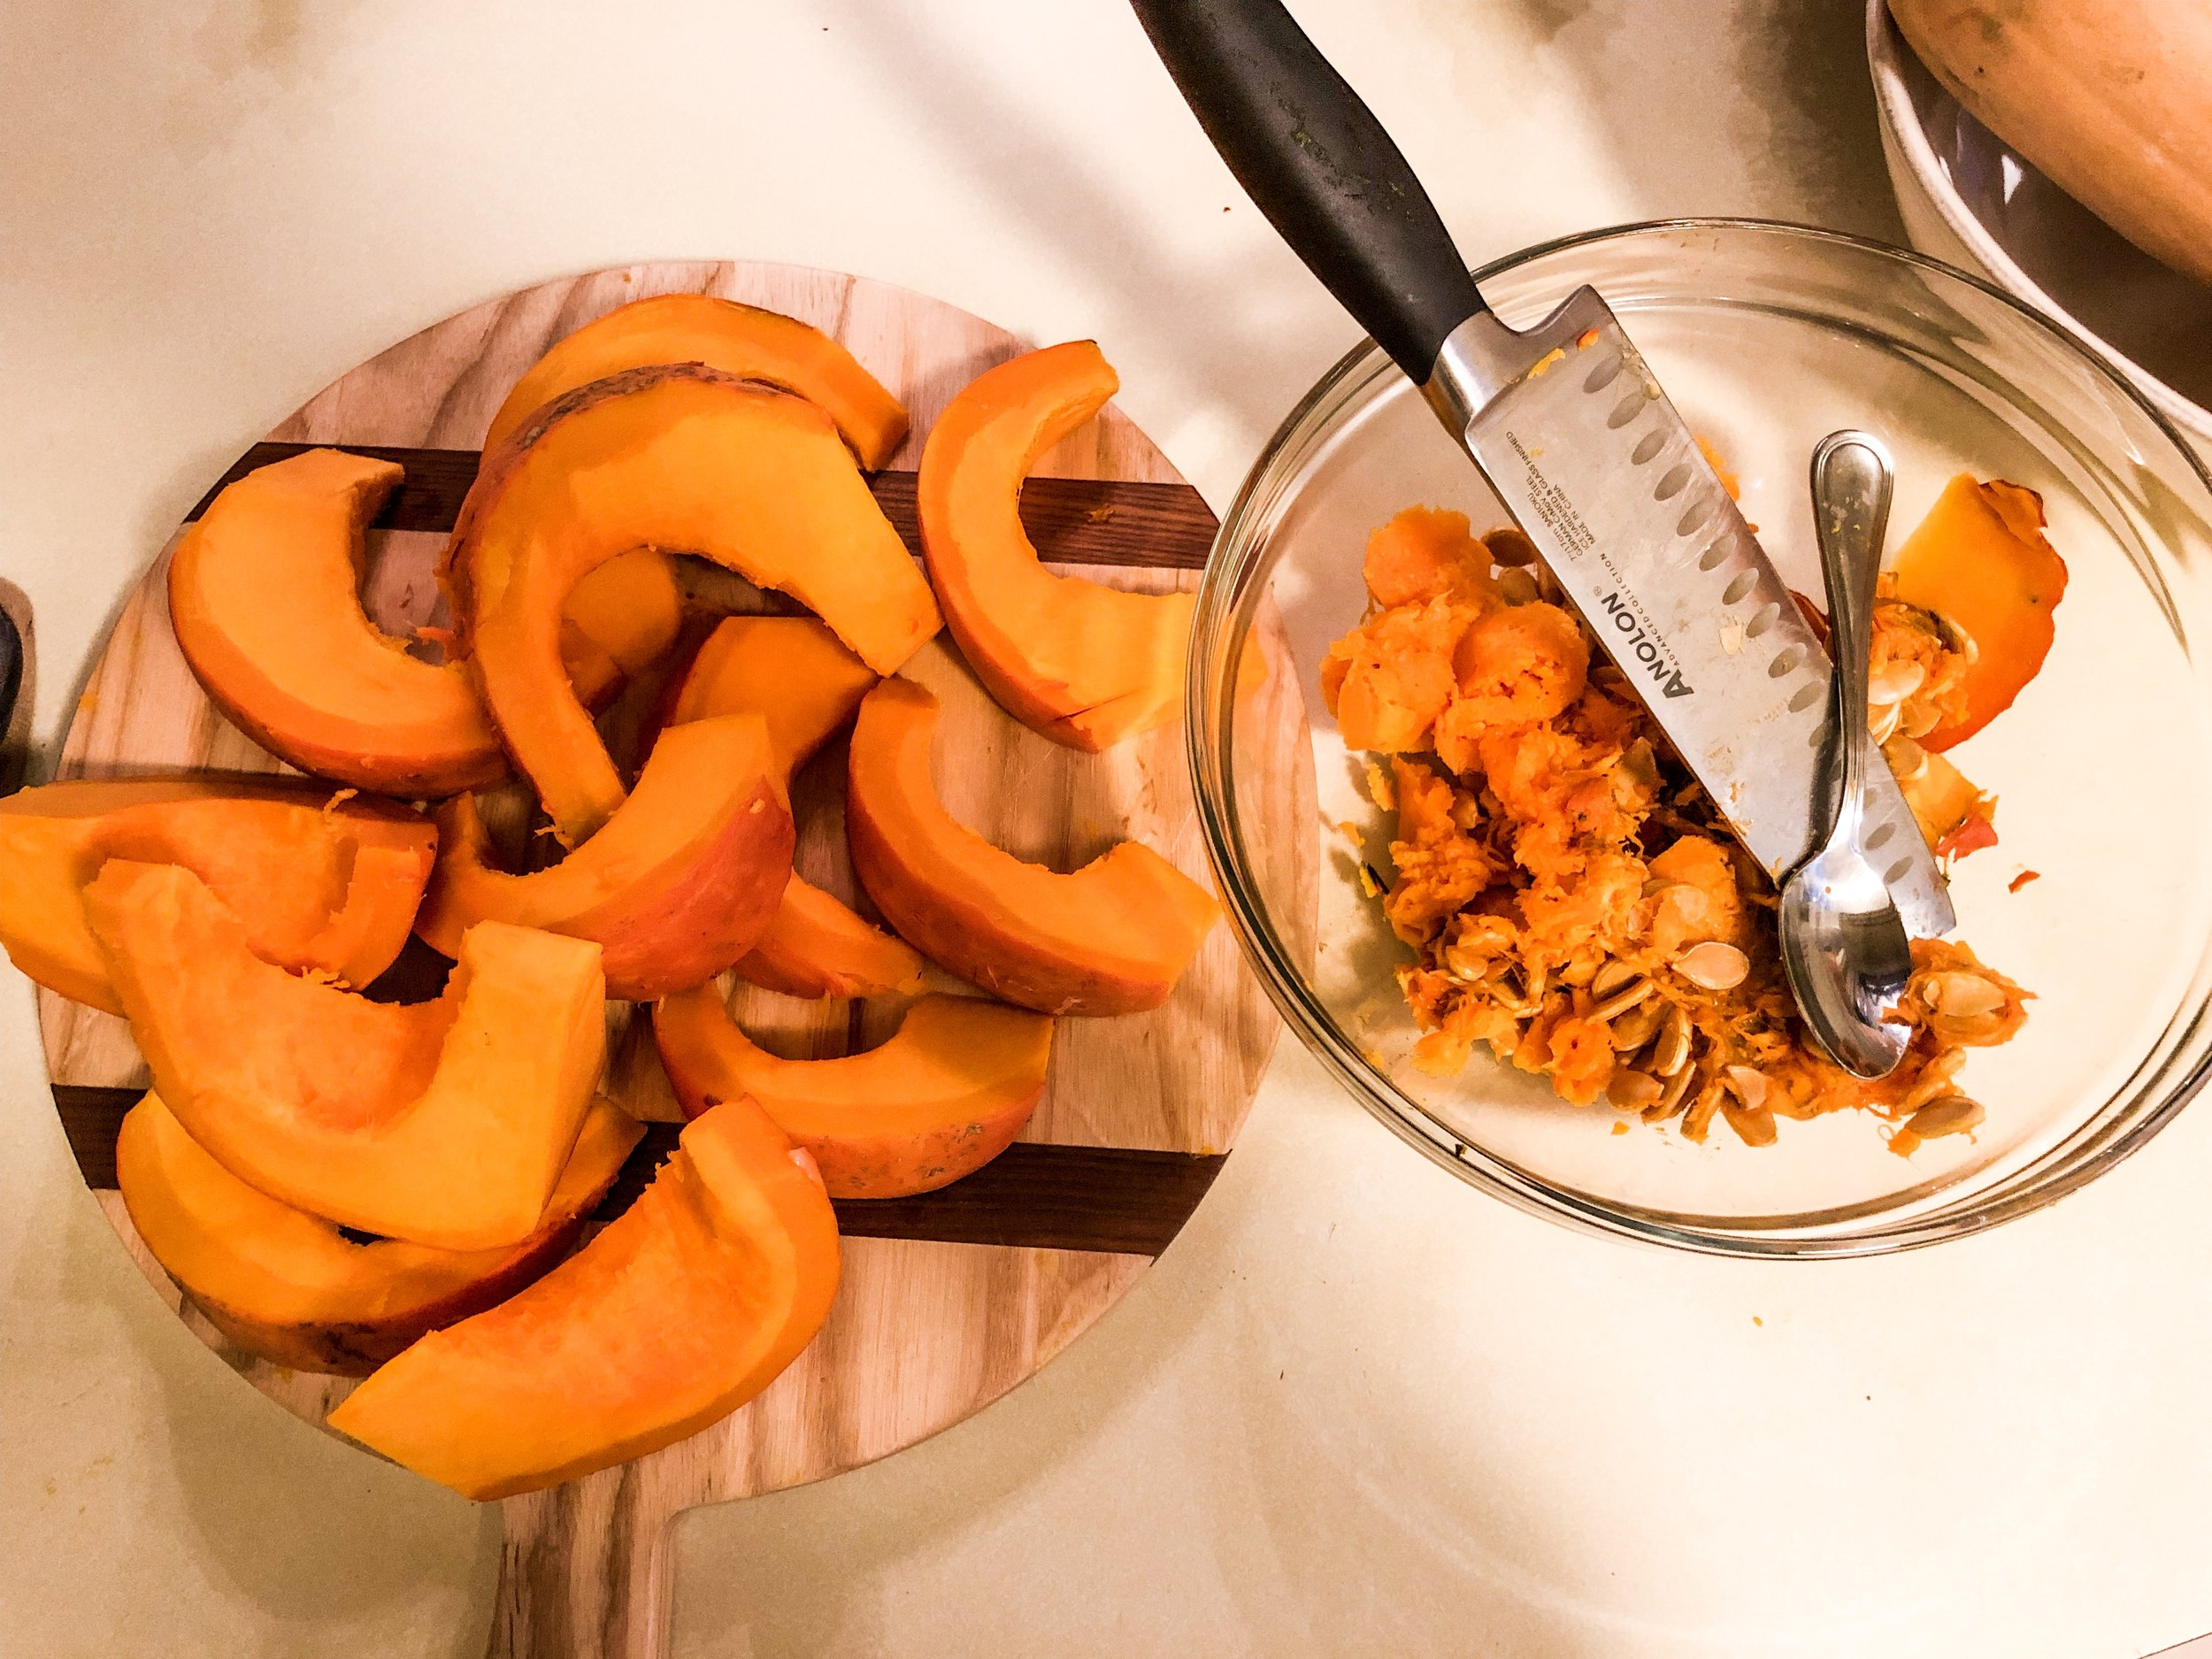 Perfect Winter Appetizer - Roasted Cinnamon Kabocha Squash